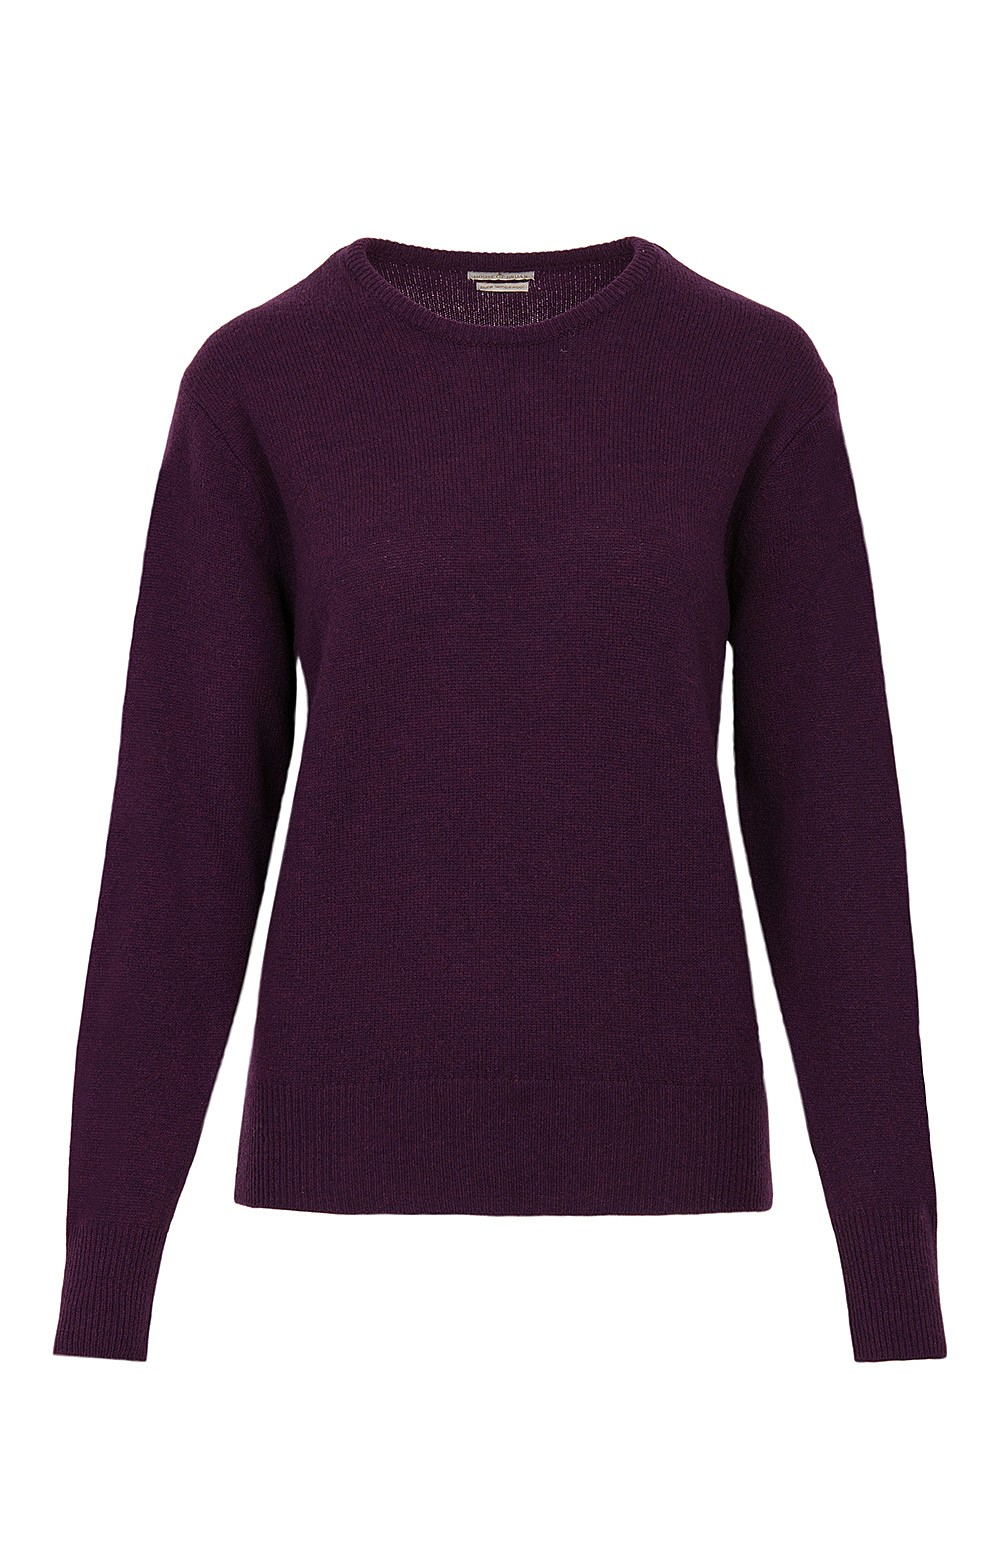 a8e34c76eed87 House of Bruar Lambswool Crew Neck - House of Bruar